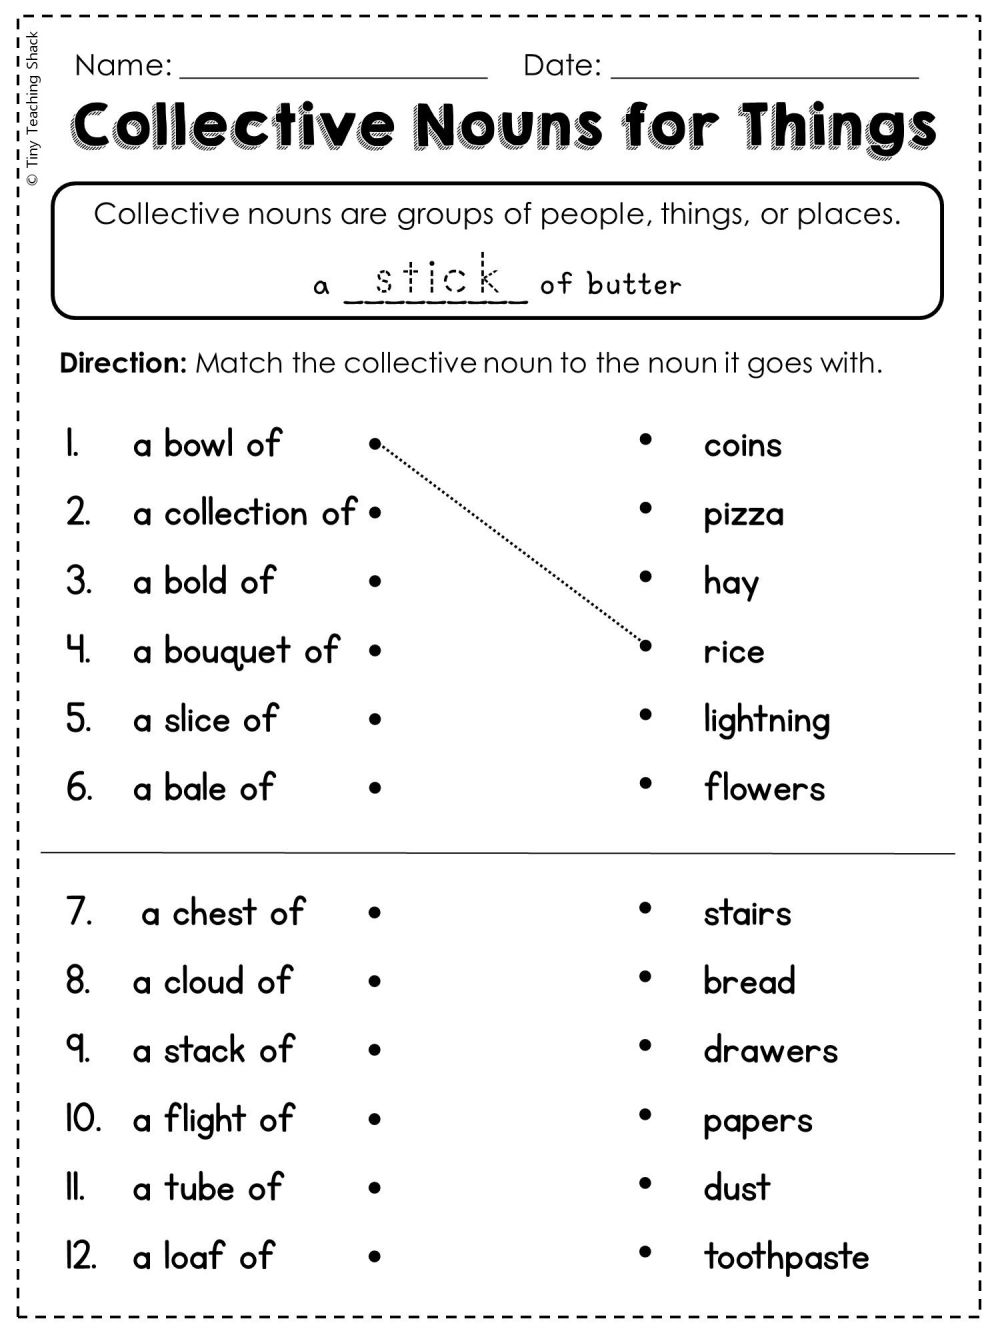 medium resolution of Collective Nouns Worksheets Middle School   Printable Worksheets and  Activities for Teachers